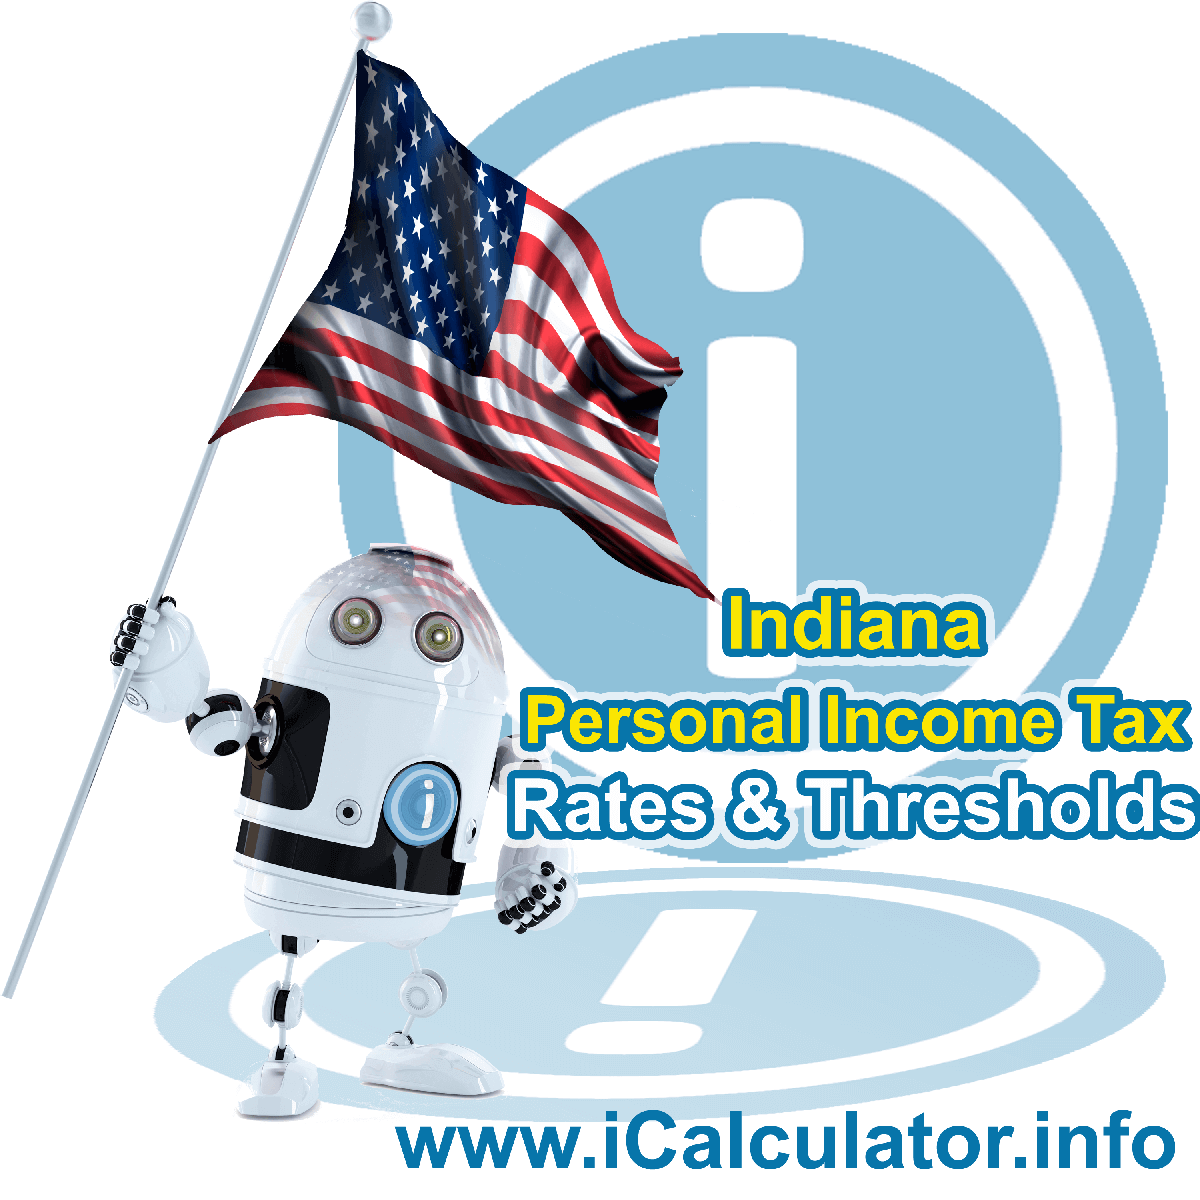 Indiana State Tax Tables 2014. This image displays details of the Indiana State Tax Tables for the 2014 tax return year which is provided in support of the 2014 US Tax Calculator